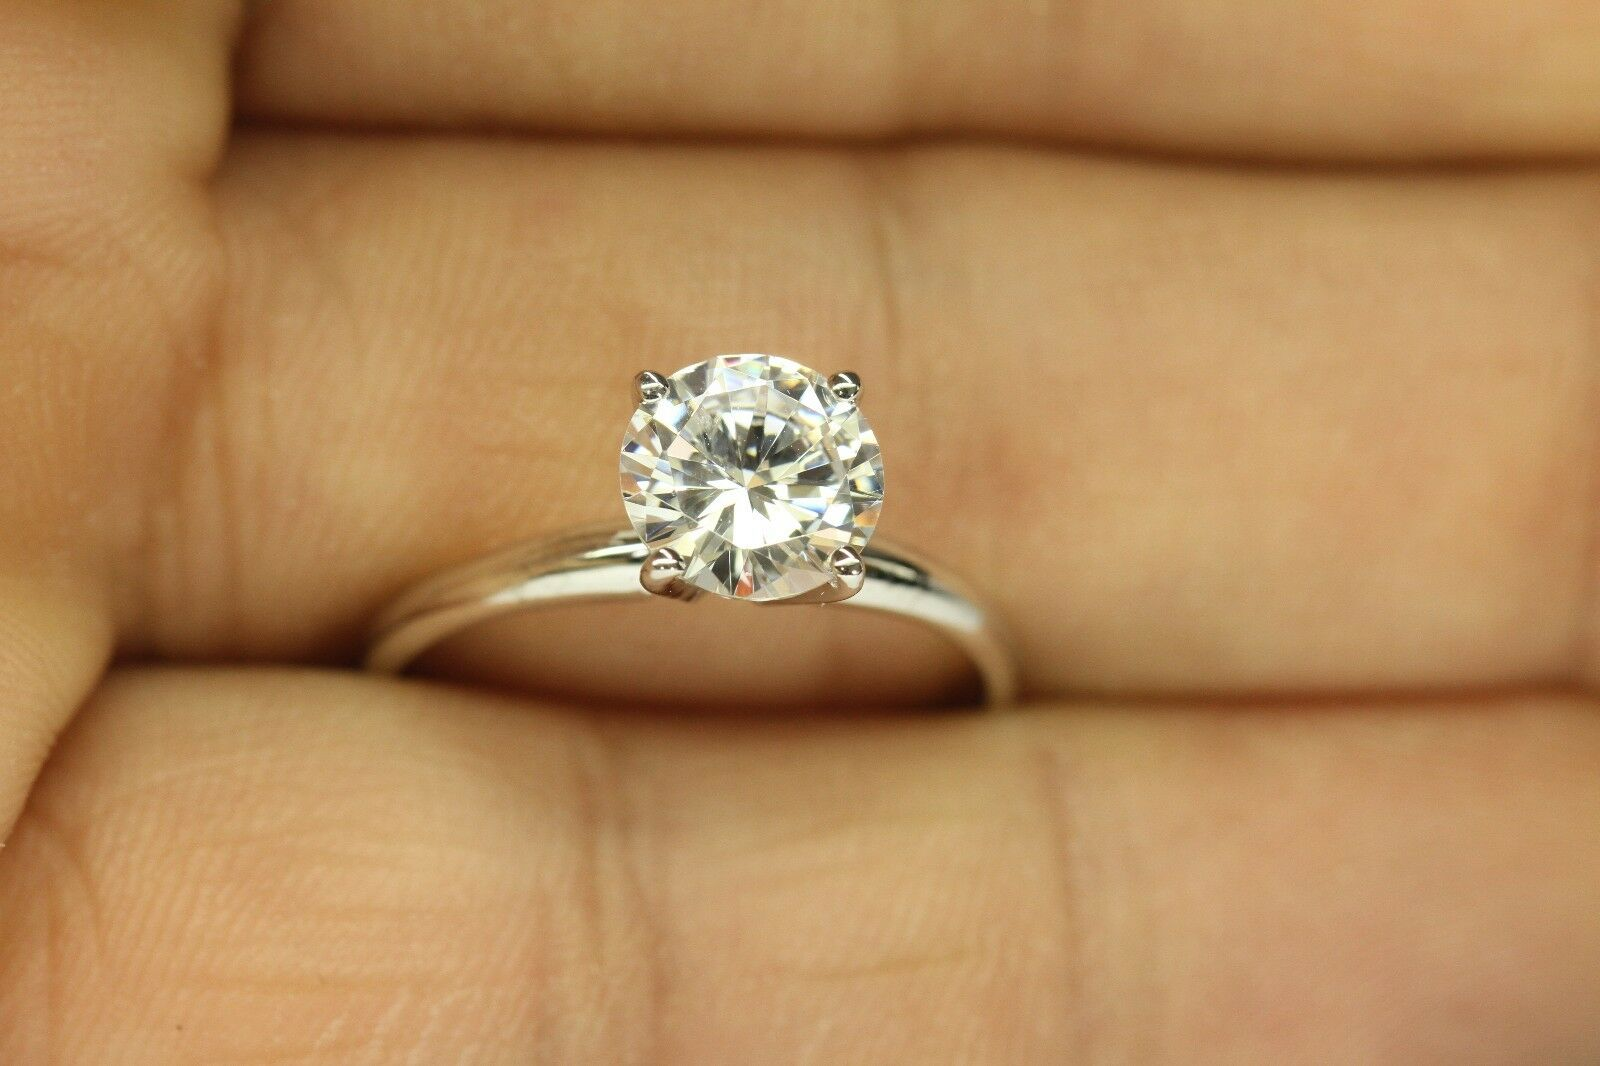 1.00 CARAT ROUND DIAMOND ENGAGEMENT RING WITH 4 PRONG YELLOW gold